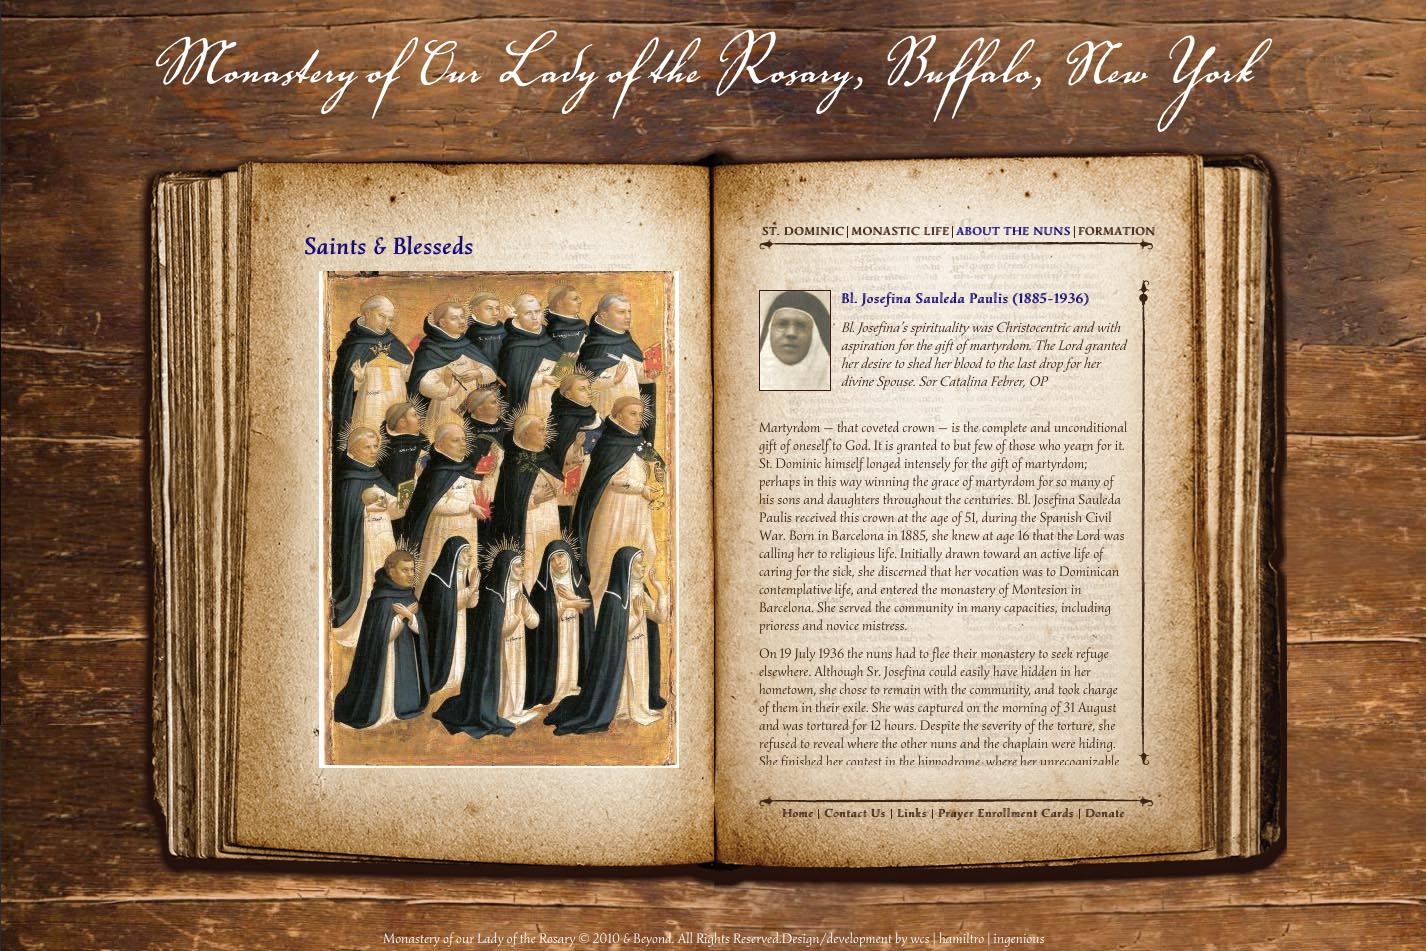 web design for a monastery - saints and blesseds page